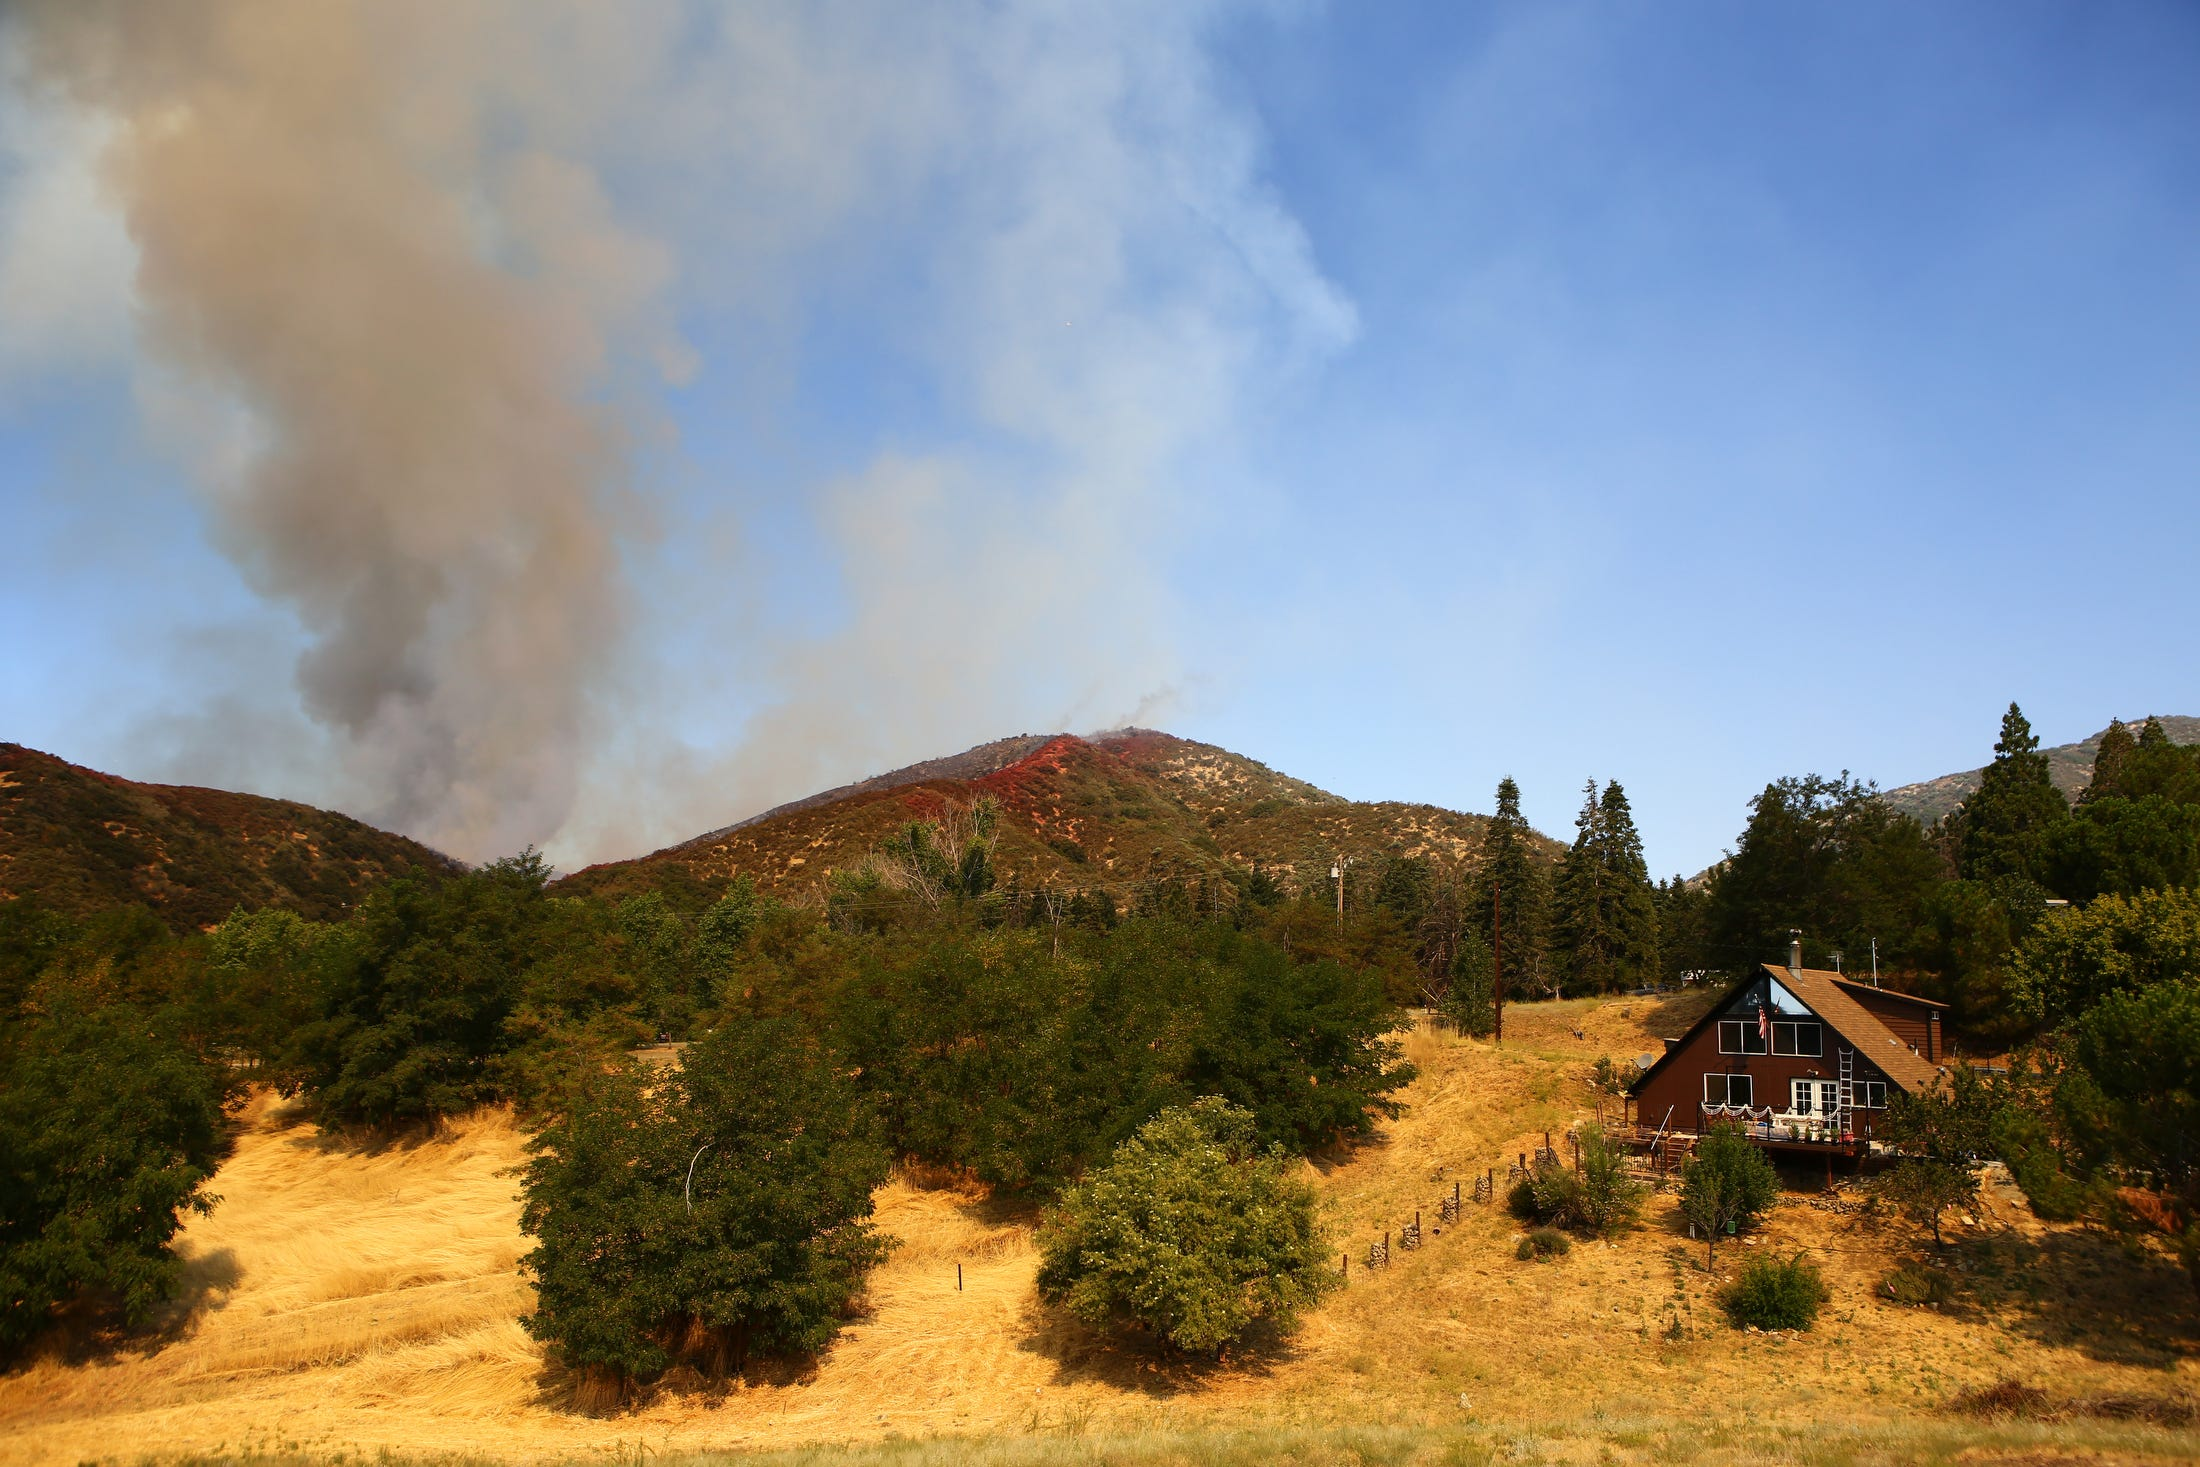 Apple Fire Updates Cherry Valley Blaze Grows 7 800 Ordered To Evacuate